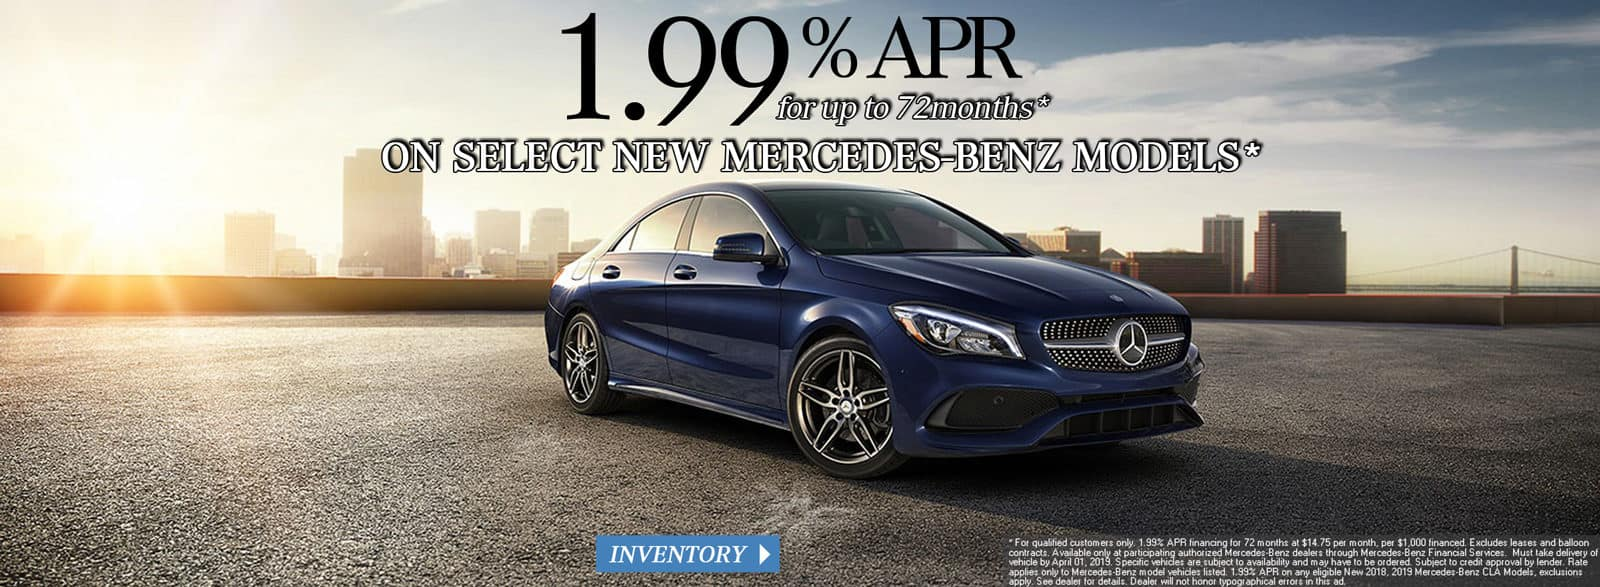 Slide_Autohaus_1600x587-2019-March-APR-Mod1-v1-CLA-v1